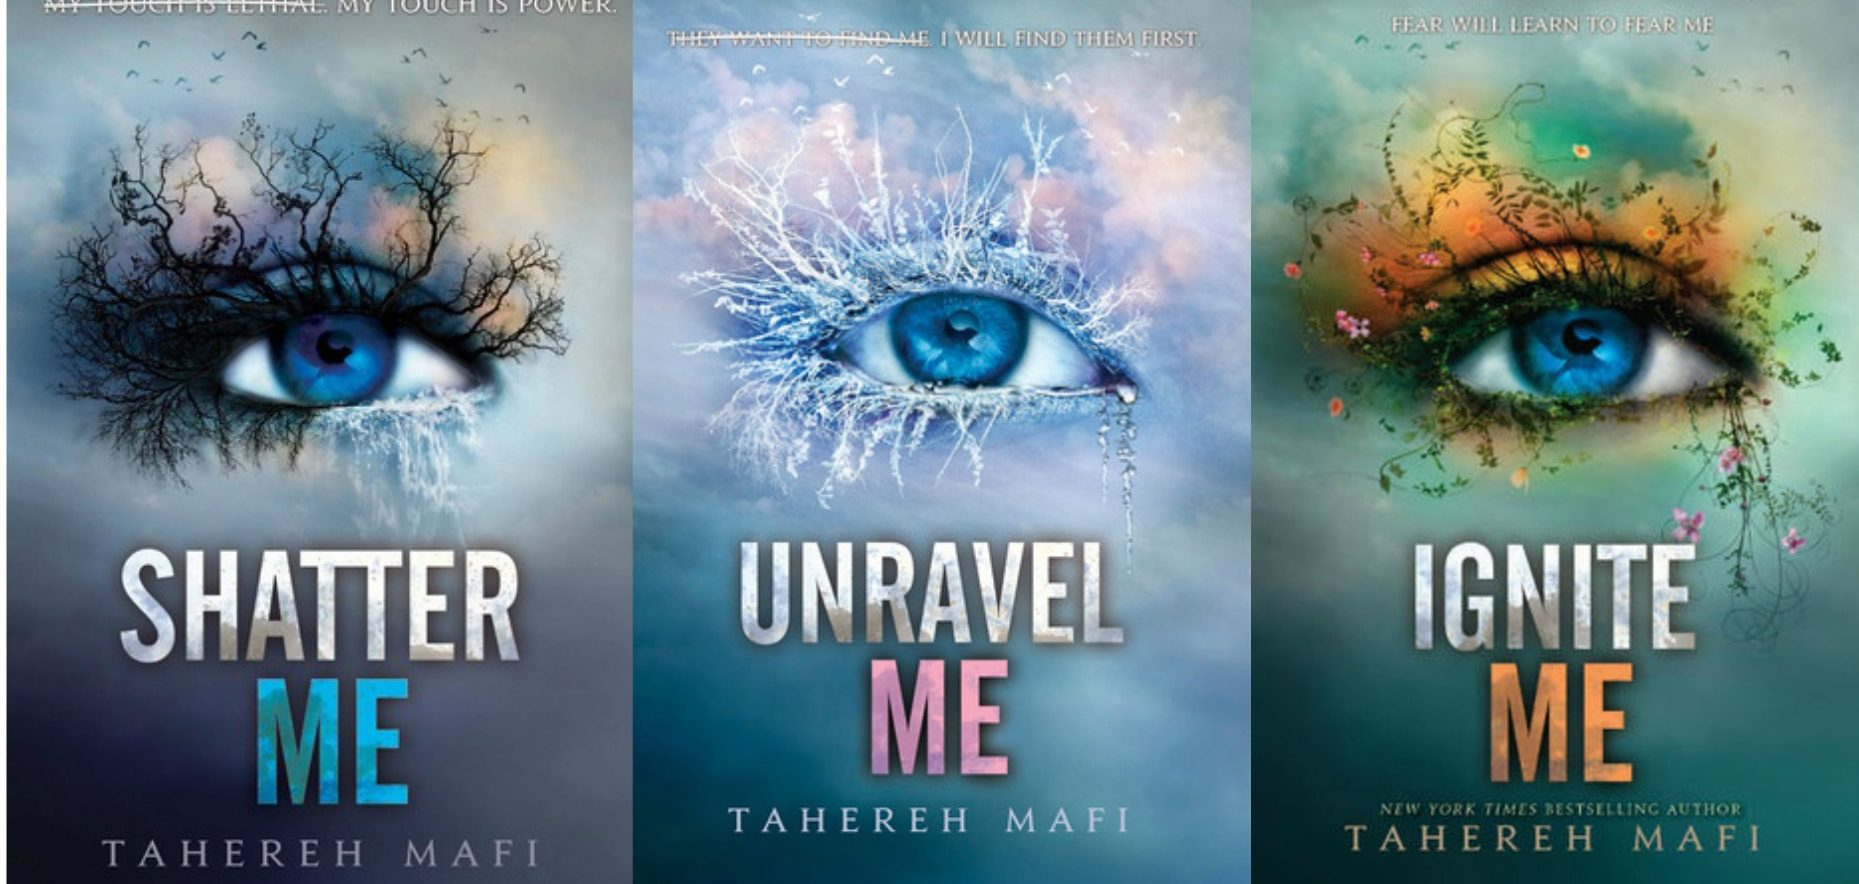 Tahereh Mafi to Write Three New 'Shatter Me' Books